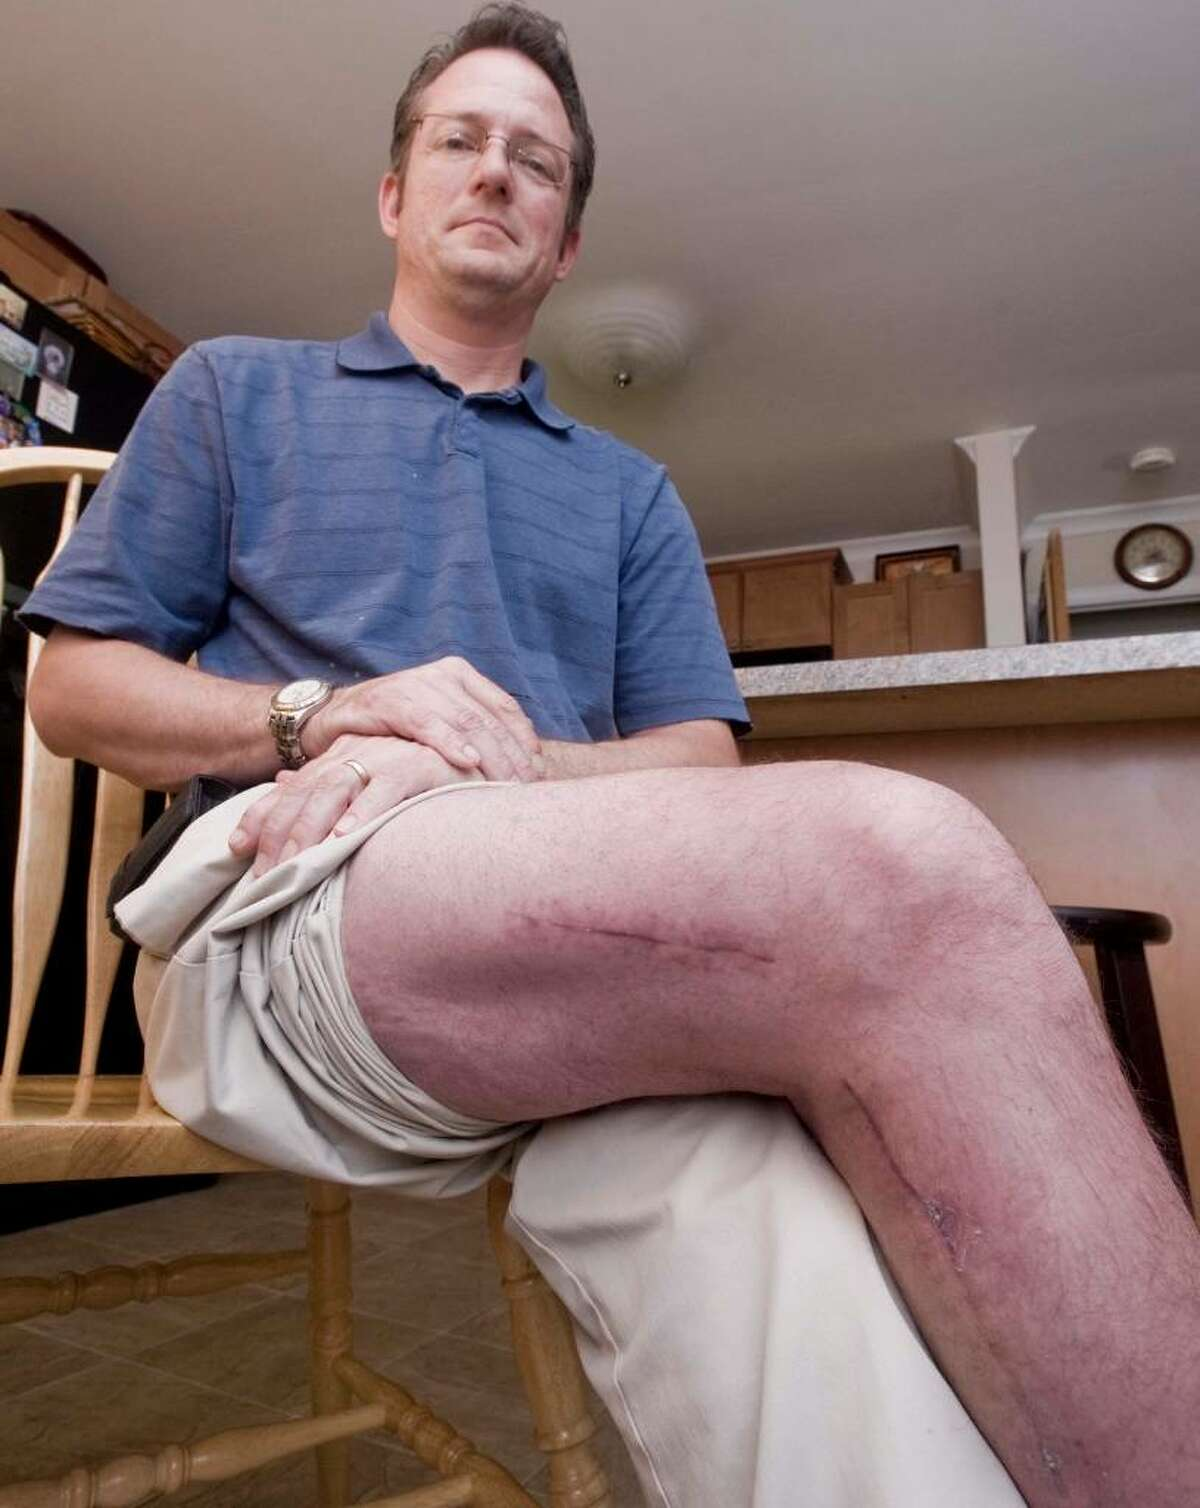 Dan Aziere suffers from a rare disease called multiple hereditary exostosis, which causes excess bones to grow in the body. He's already had 42 operations to remove about 15 excess bones. Some of the incision scars are shown evident on his right leg. Thursday, May 20, 2010